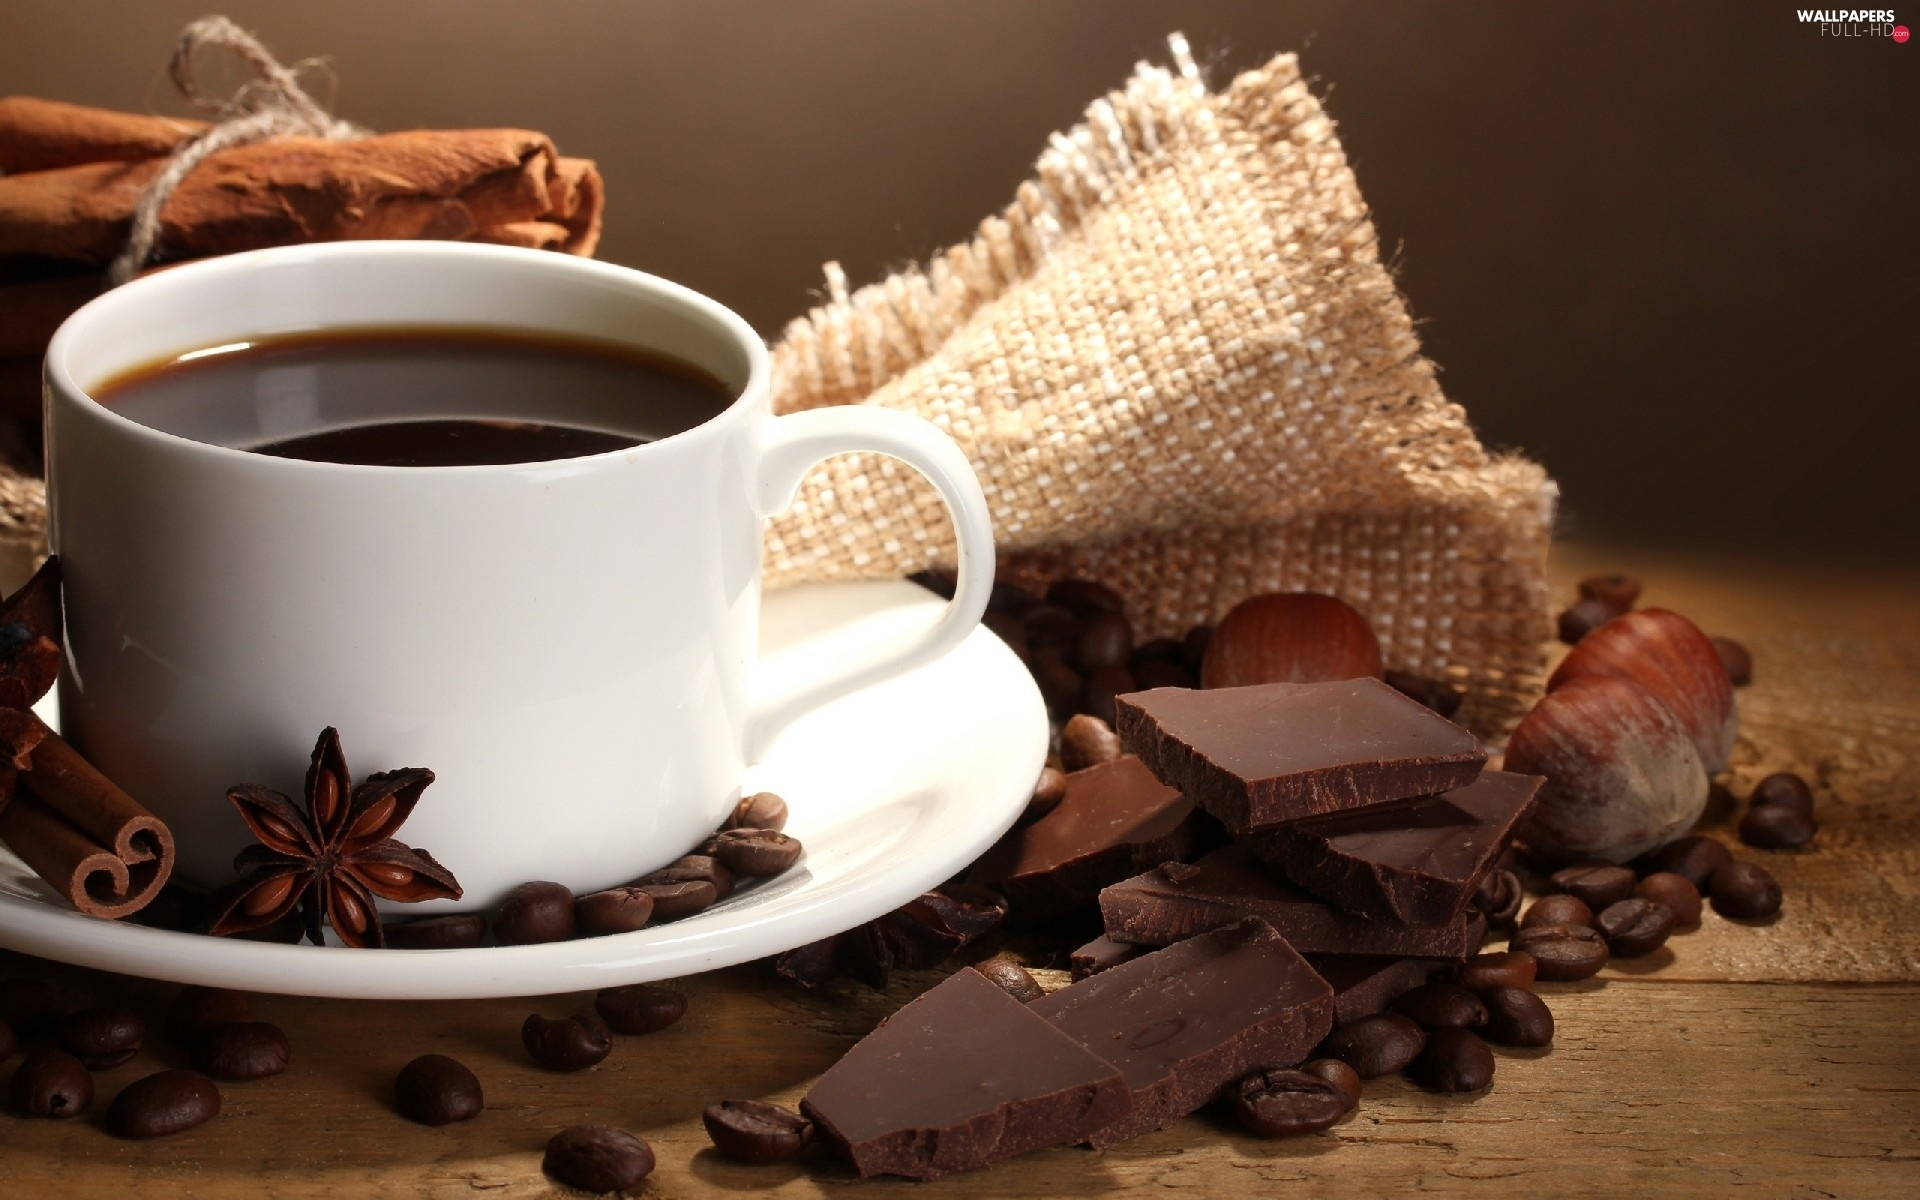 chocolate, grains, cup, coffee